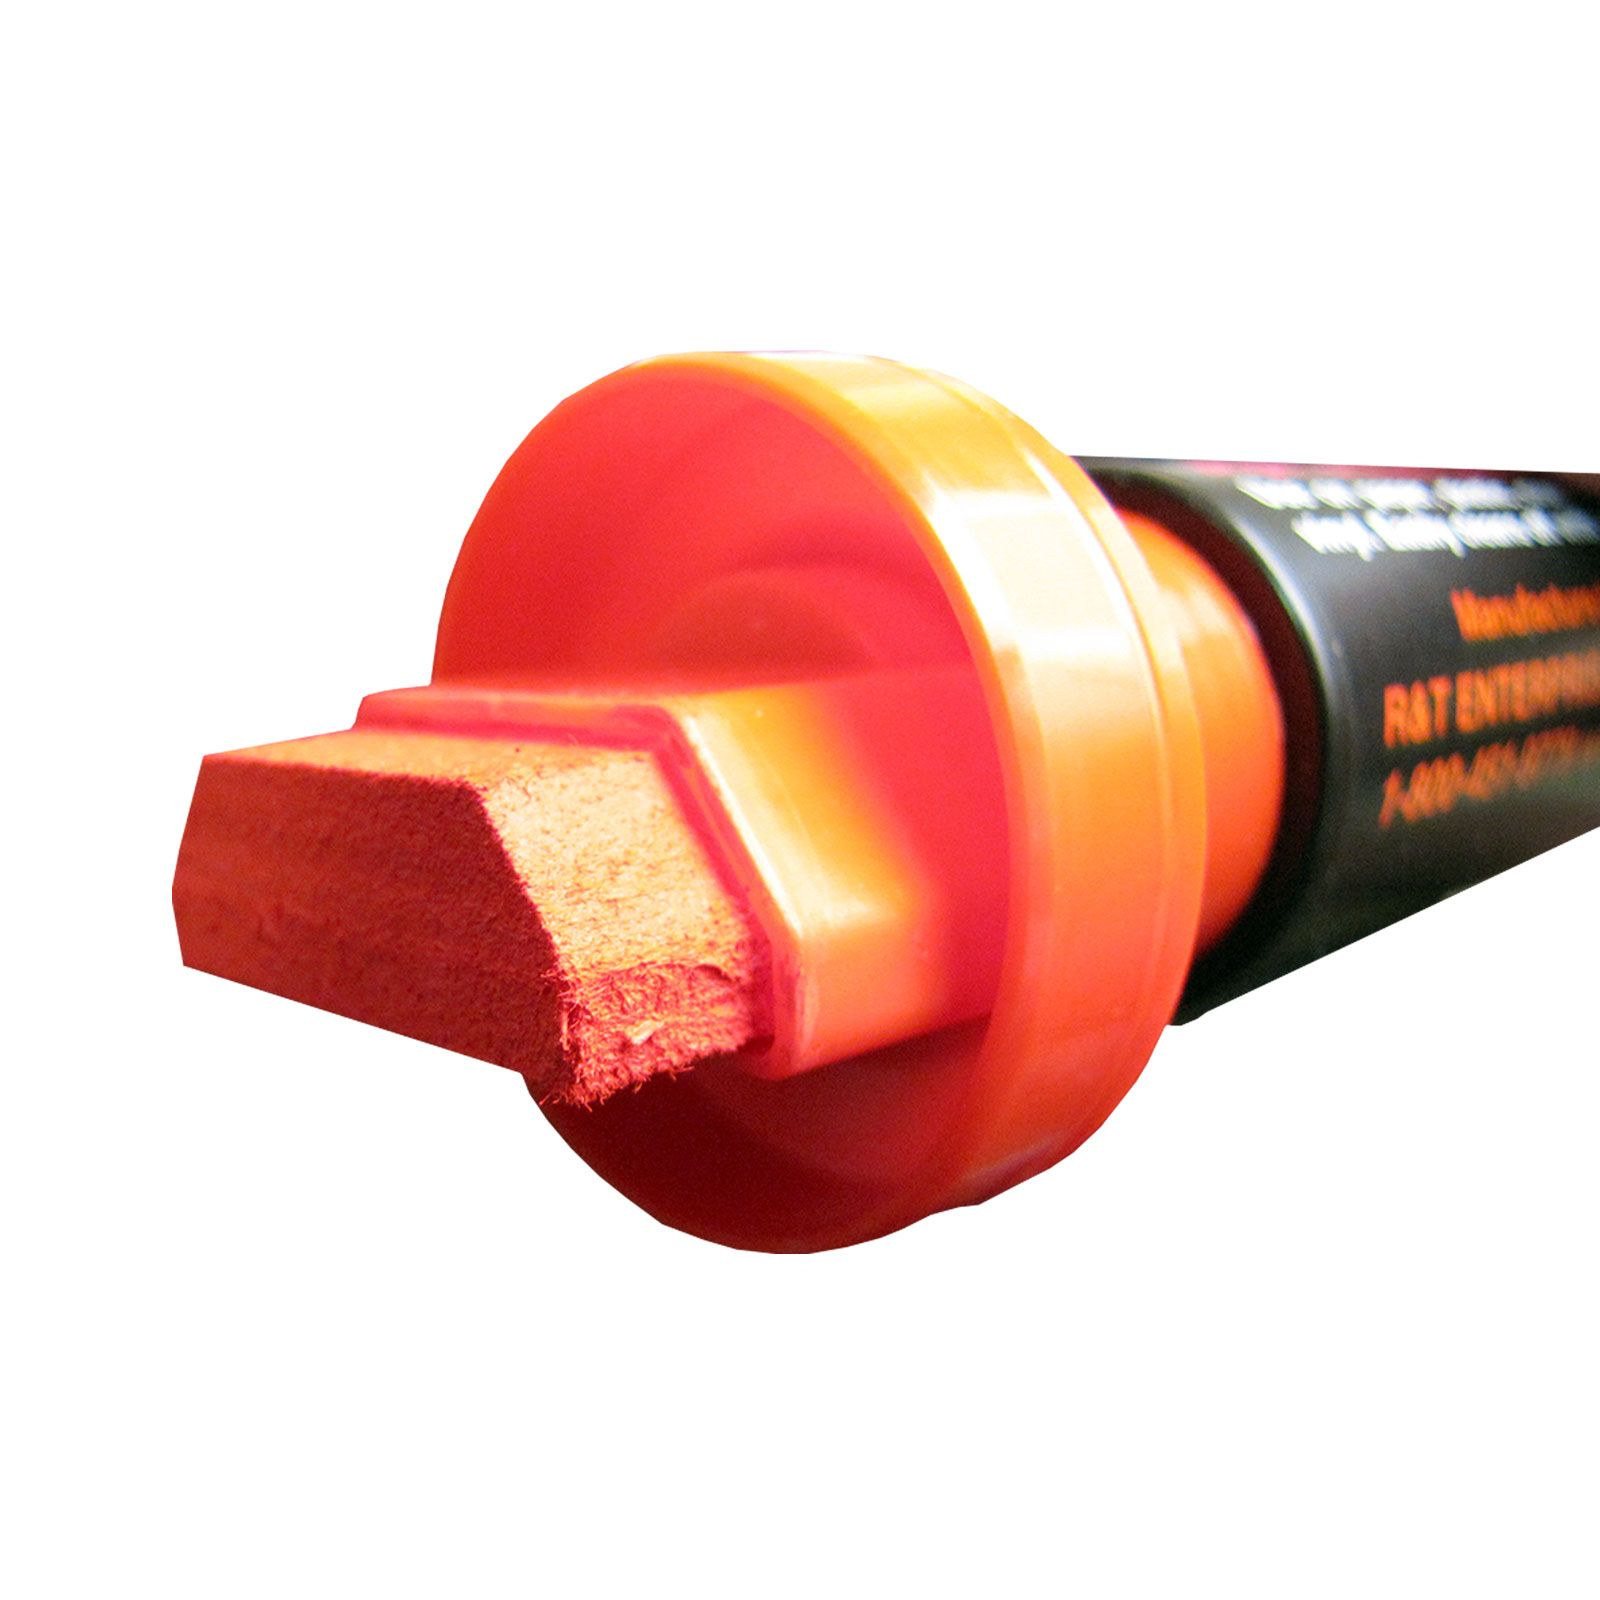 """Giant 1 1/4"""" Tip Neon Red Car Glass Marker. You can use these bright NeoMarker waterproof pens on a variety of surfaces, including acrylic boards, glass, stone, metal, plastic and most any other smooth surface."""